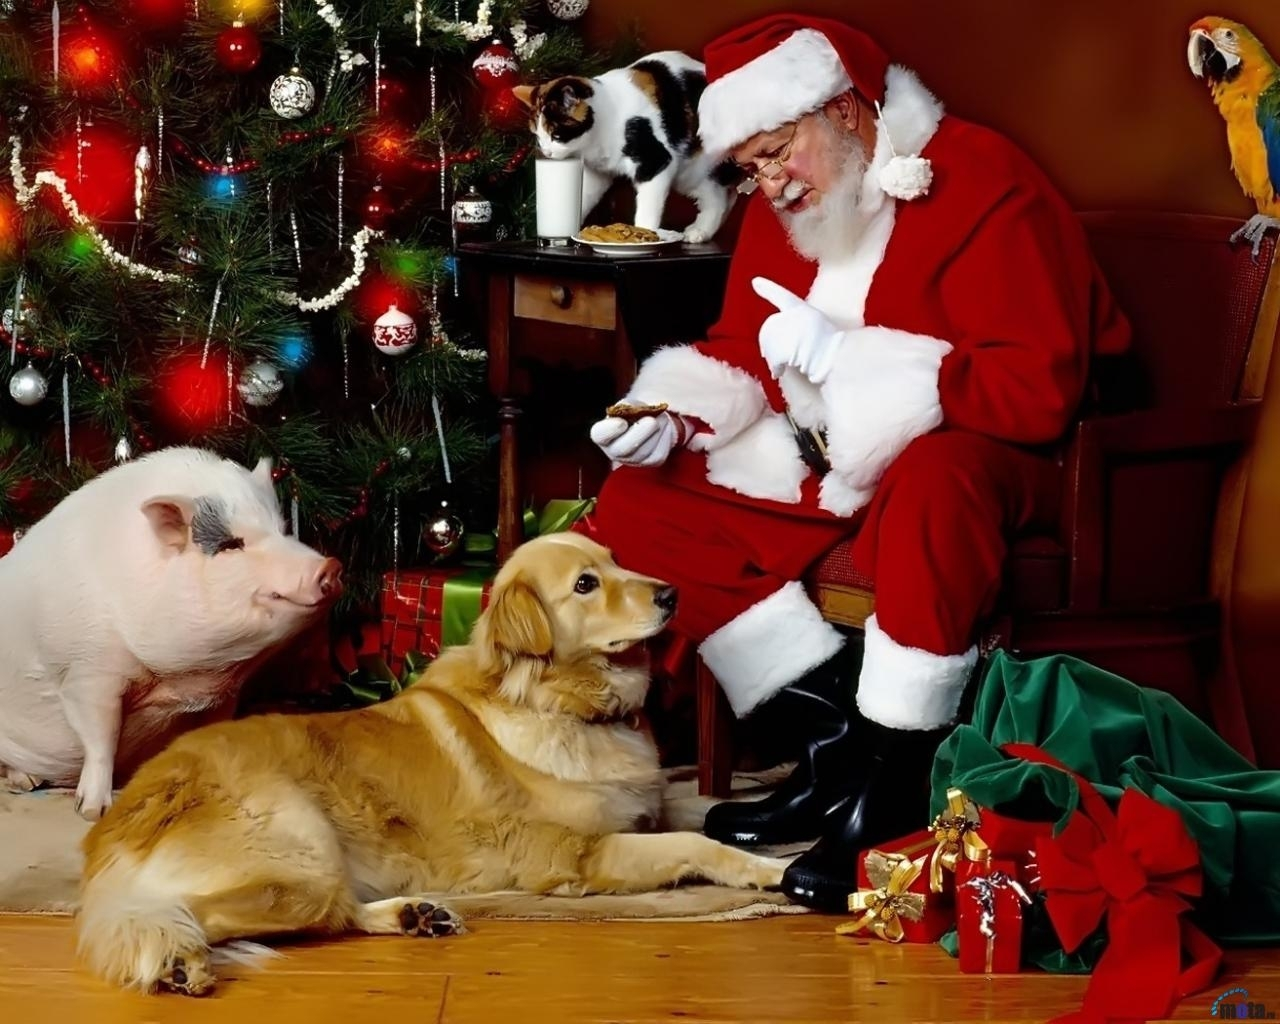 2279 download wallpaper Holidays, Animals, Cats, Dogs, New Year, Jack Frost, Santa Claus, Christmas, Xmas, Pigs screensavers and pictures for free